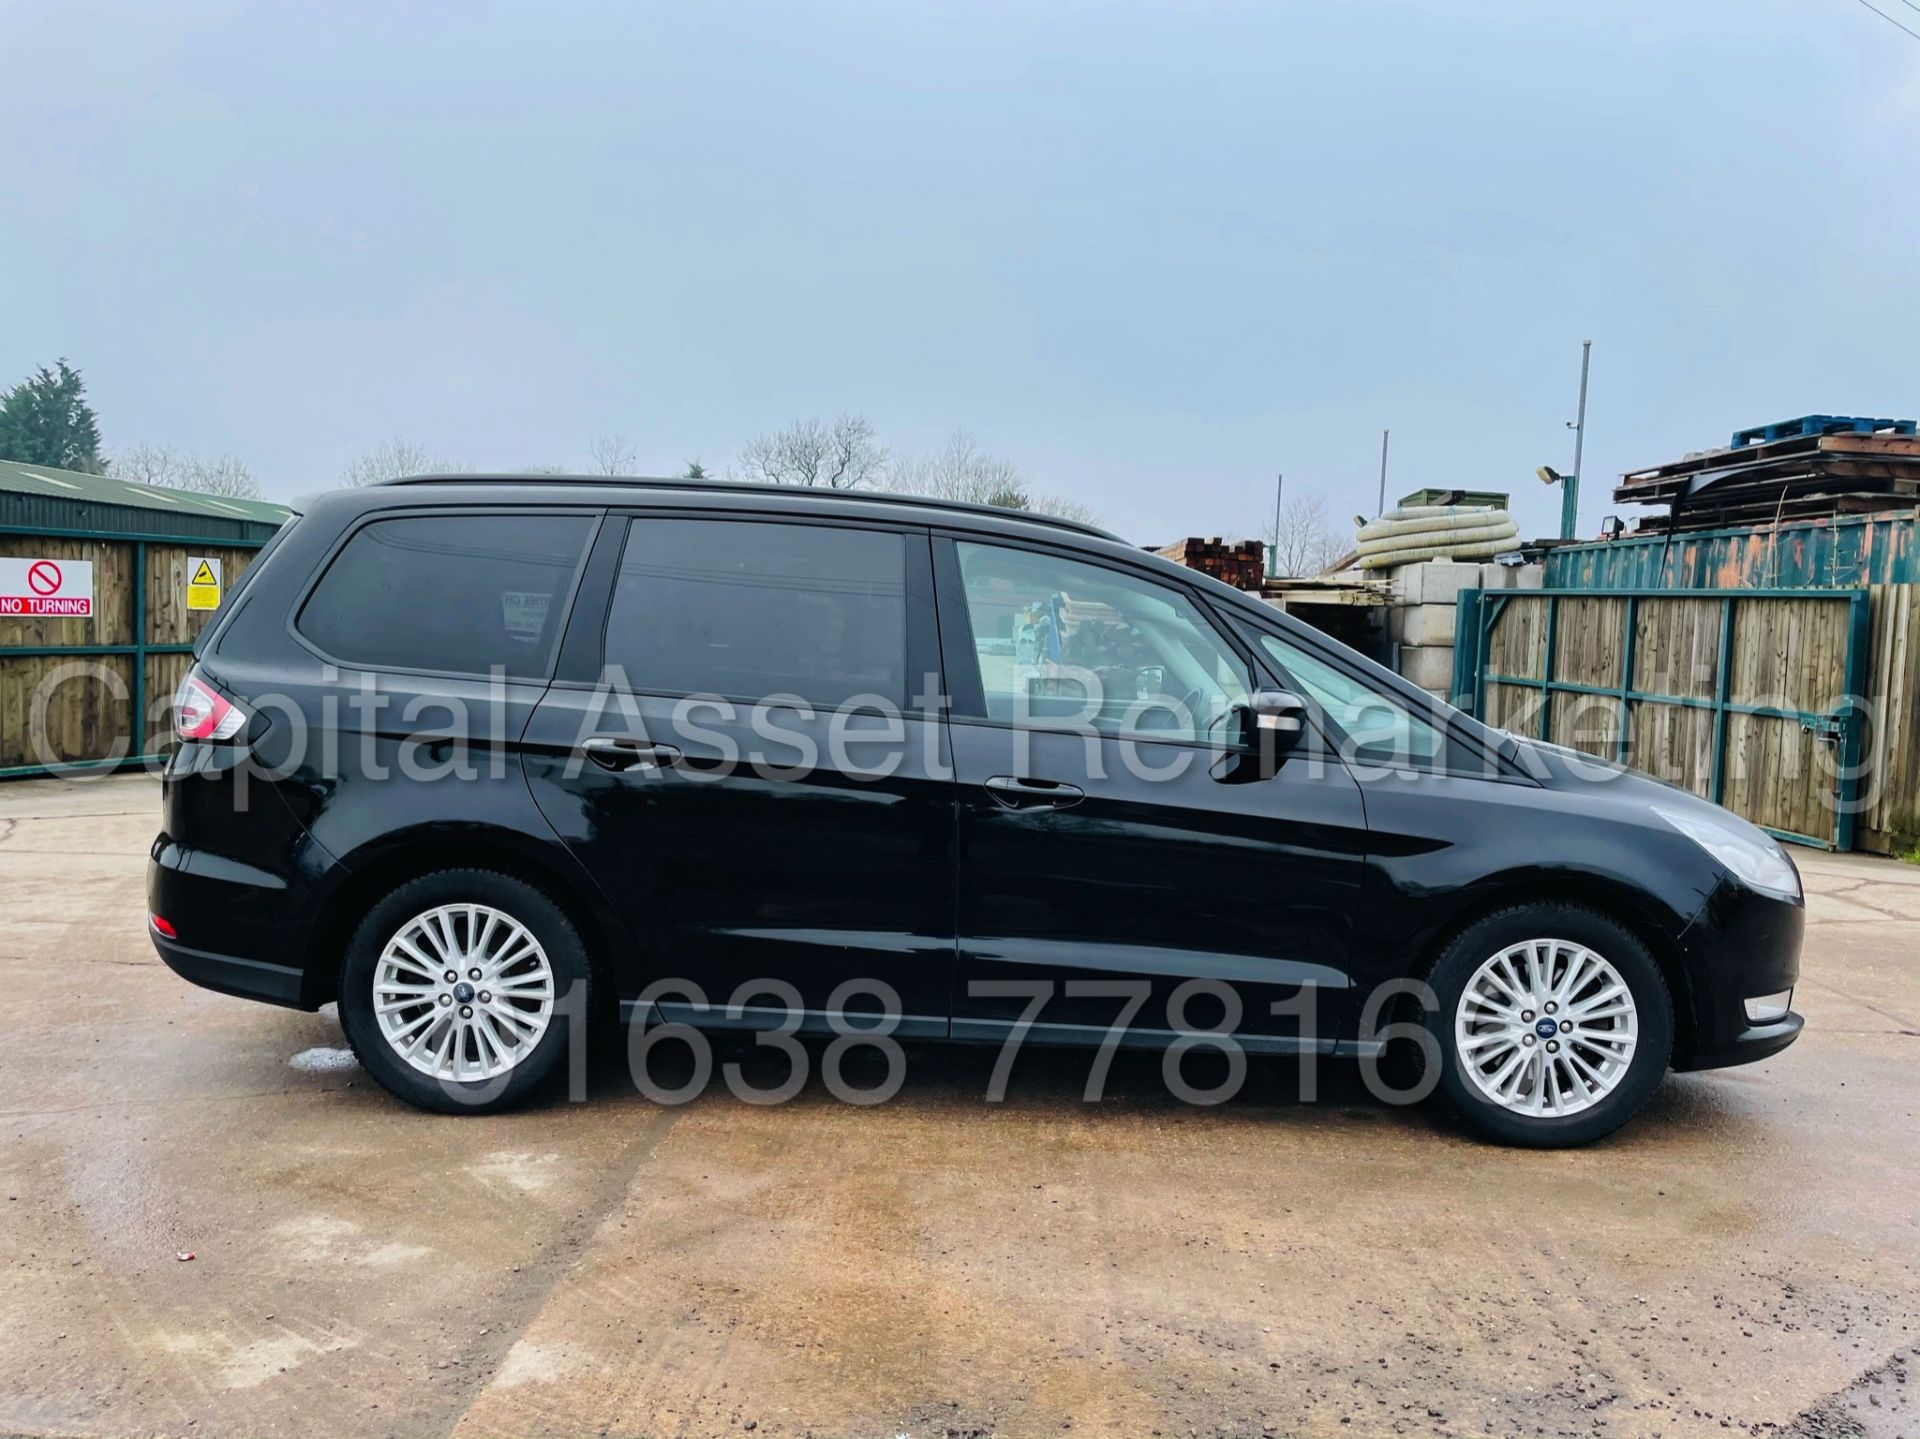 (On Sale) FORD GALAXY *ZETEC EDITION* 7 SEATER MPV (2017 - EURO 6) '2.0 TDCI - AUTO' (1 OWNER) - Image 14 of 48